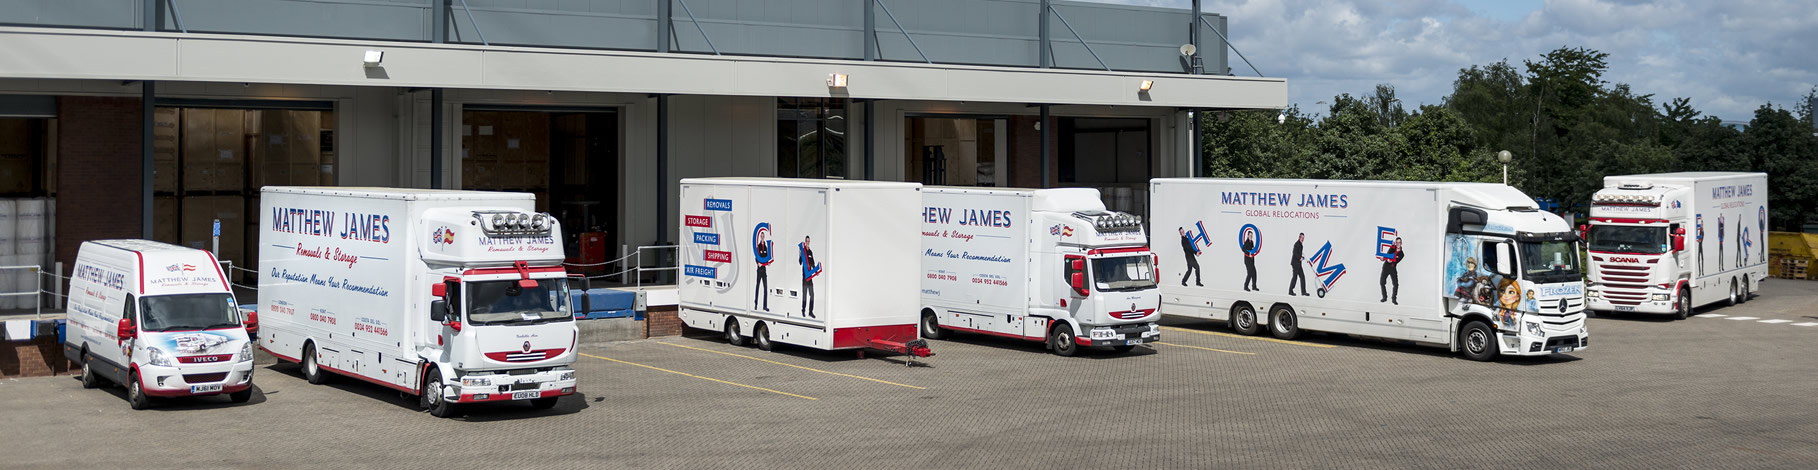 Matthew James Removals Depot